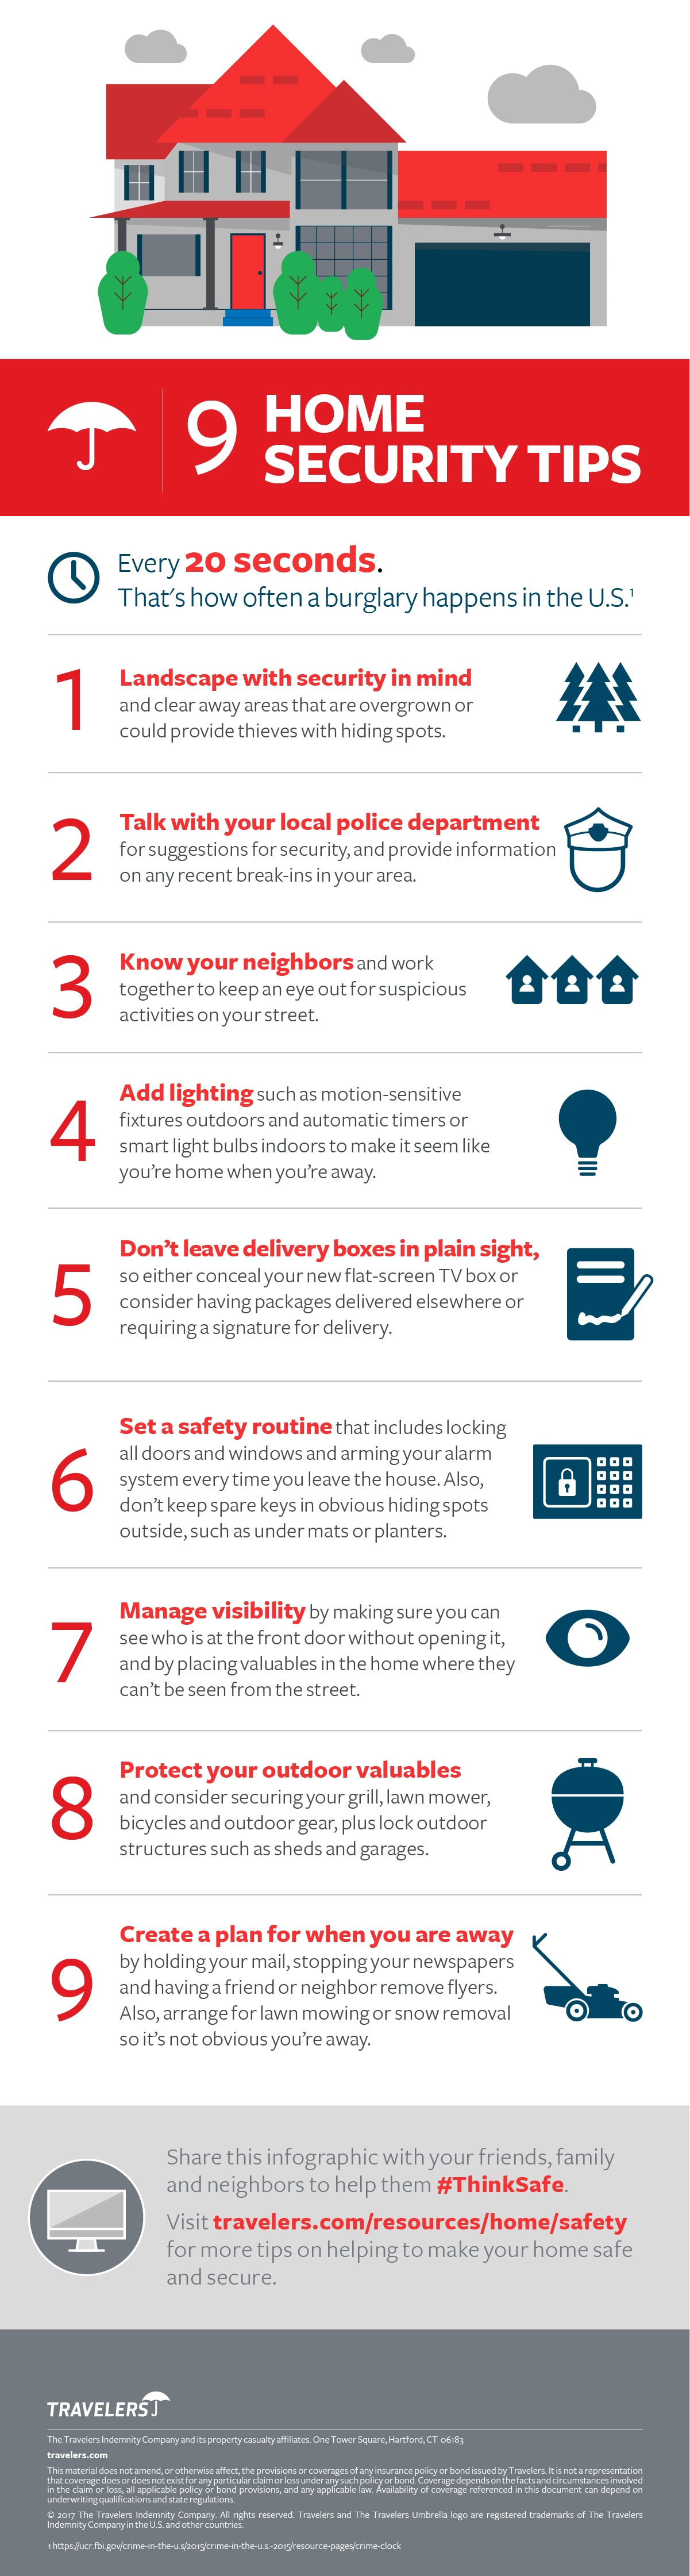 9 Home Security Tips Infographic